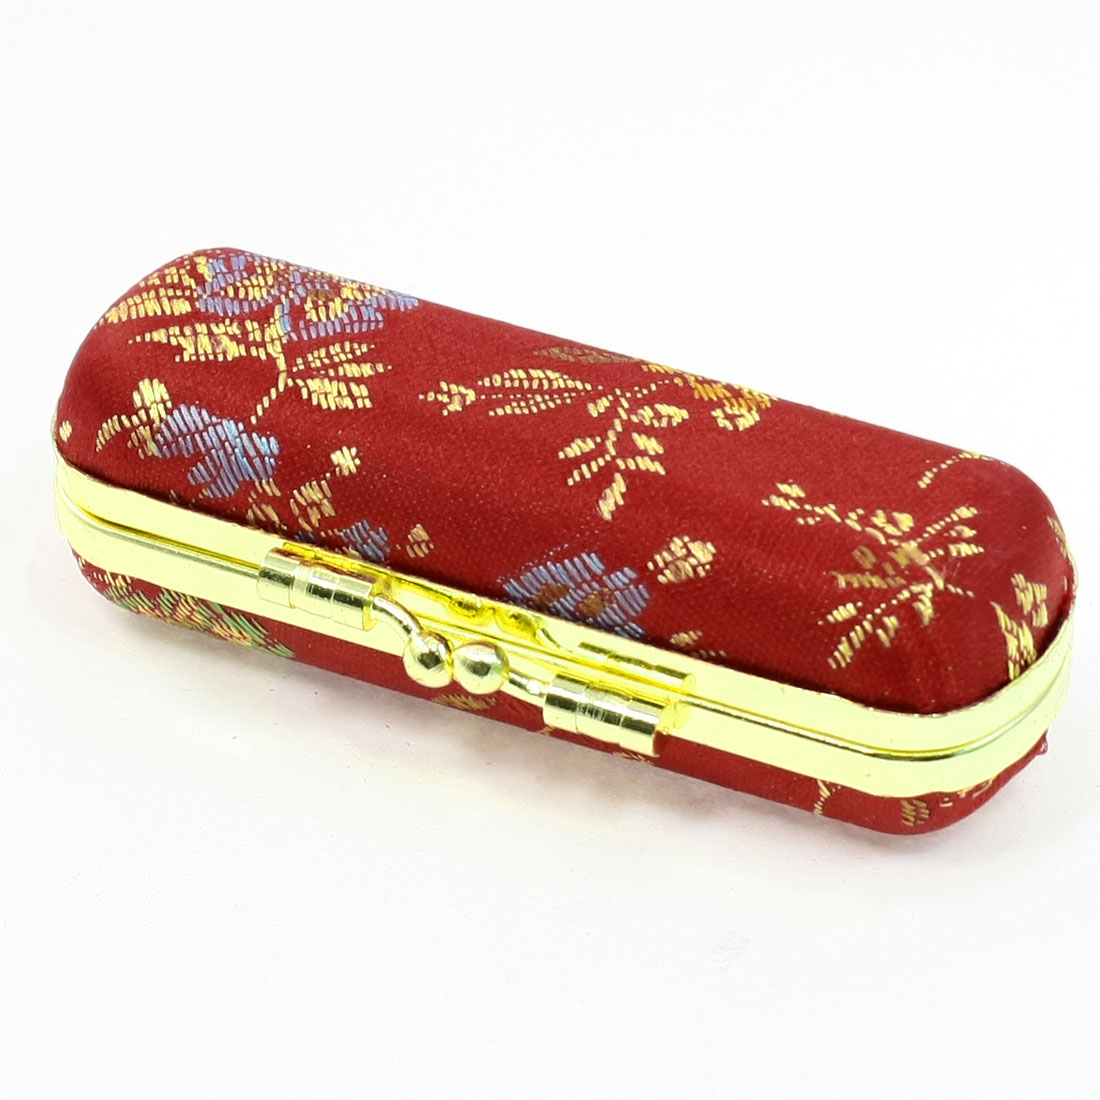 Lady Flannel Lining Metallic Box Edge Embroidery Red Lipstick Case w Mini Mirror